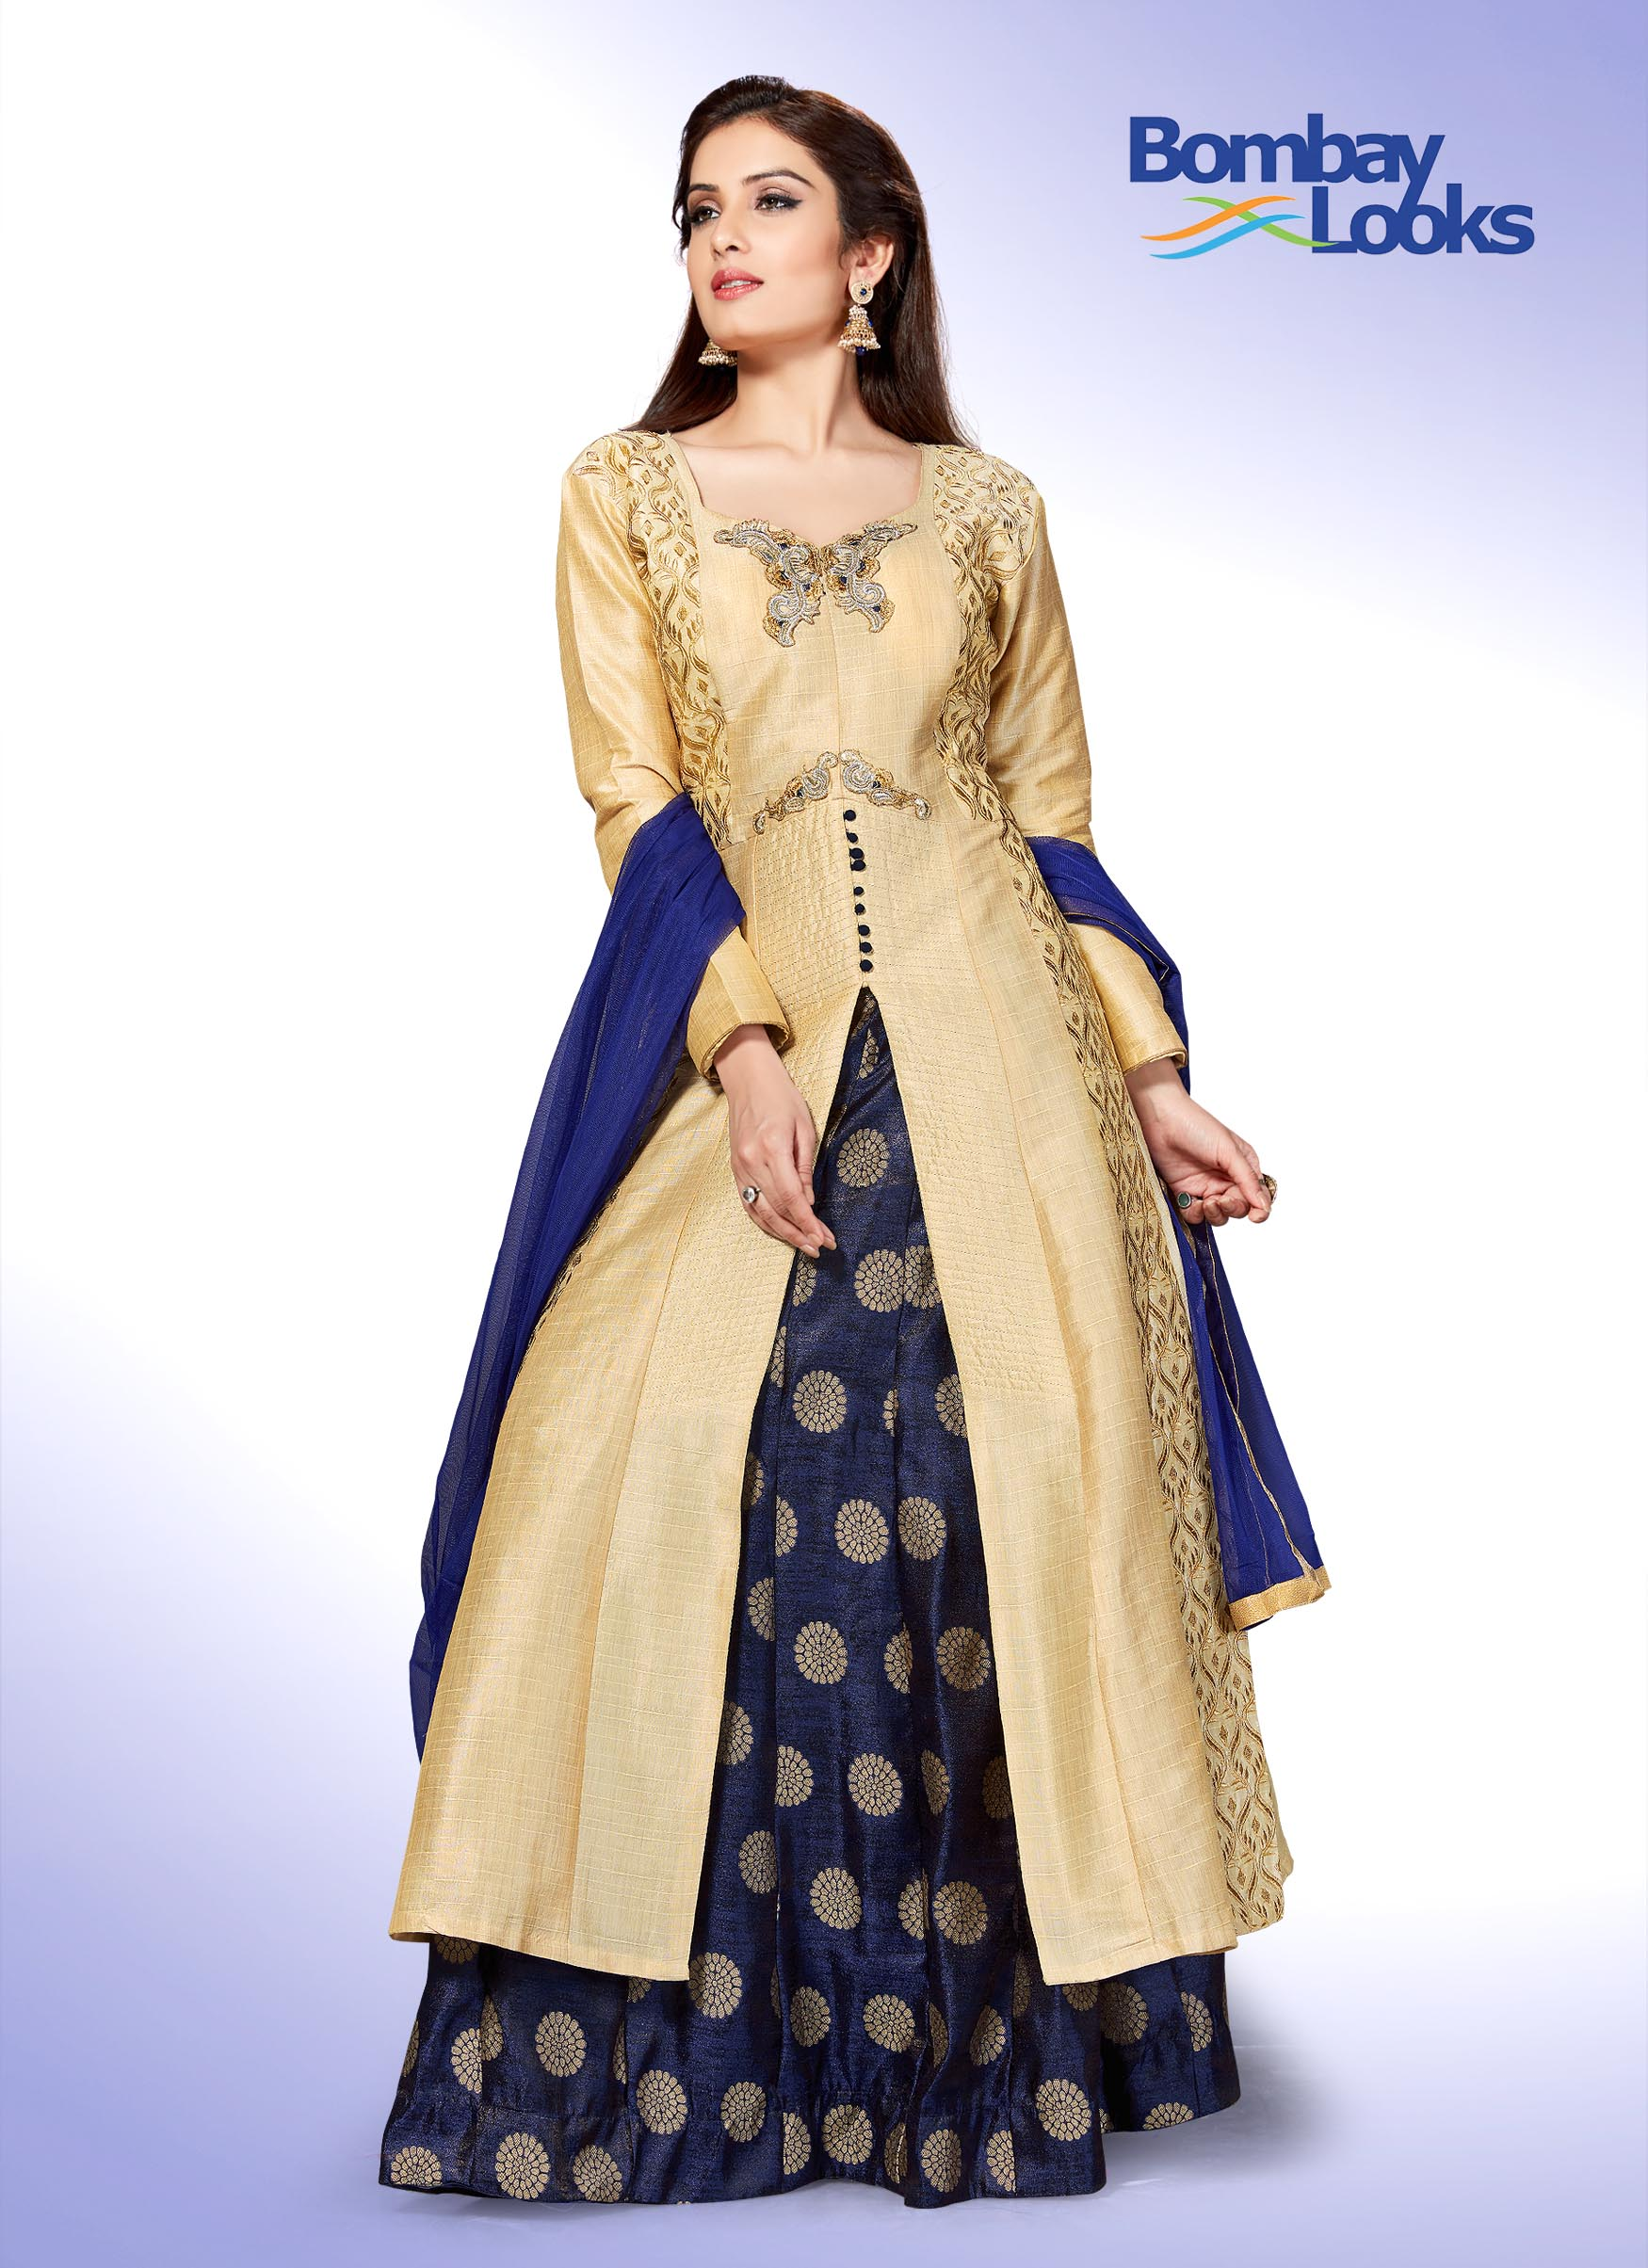 Beige suit set with navy blue brocade style skirt